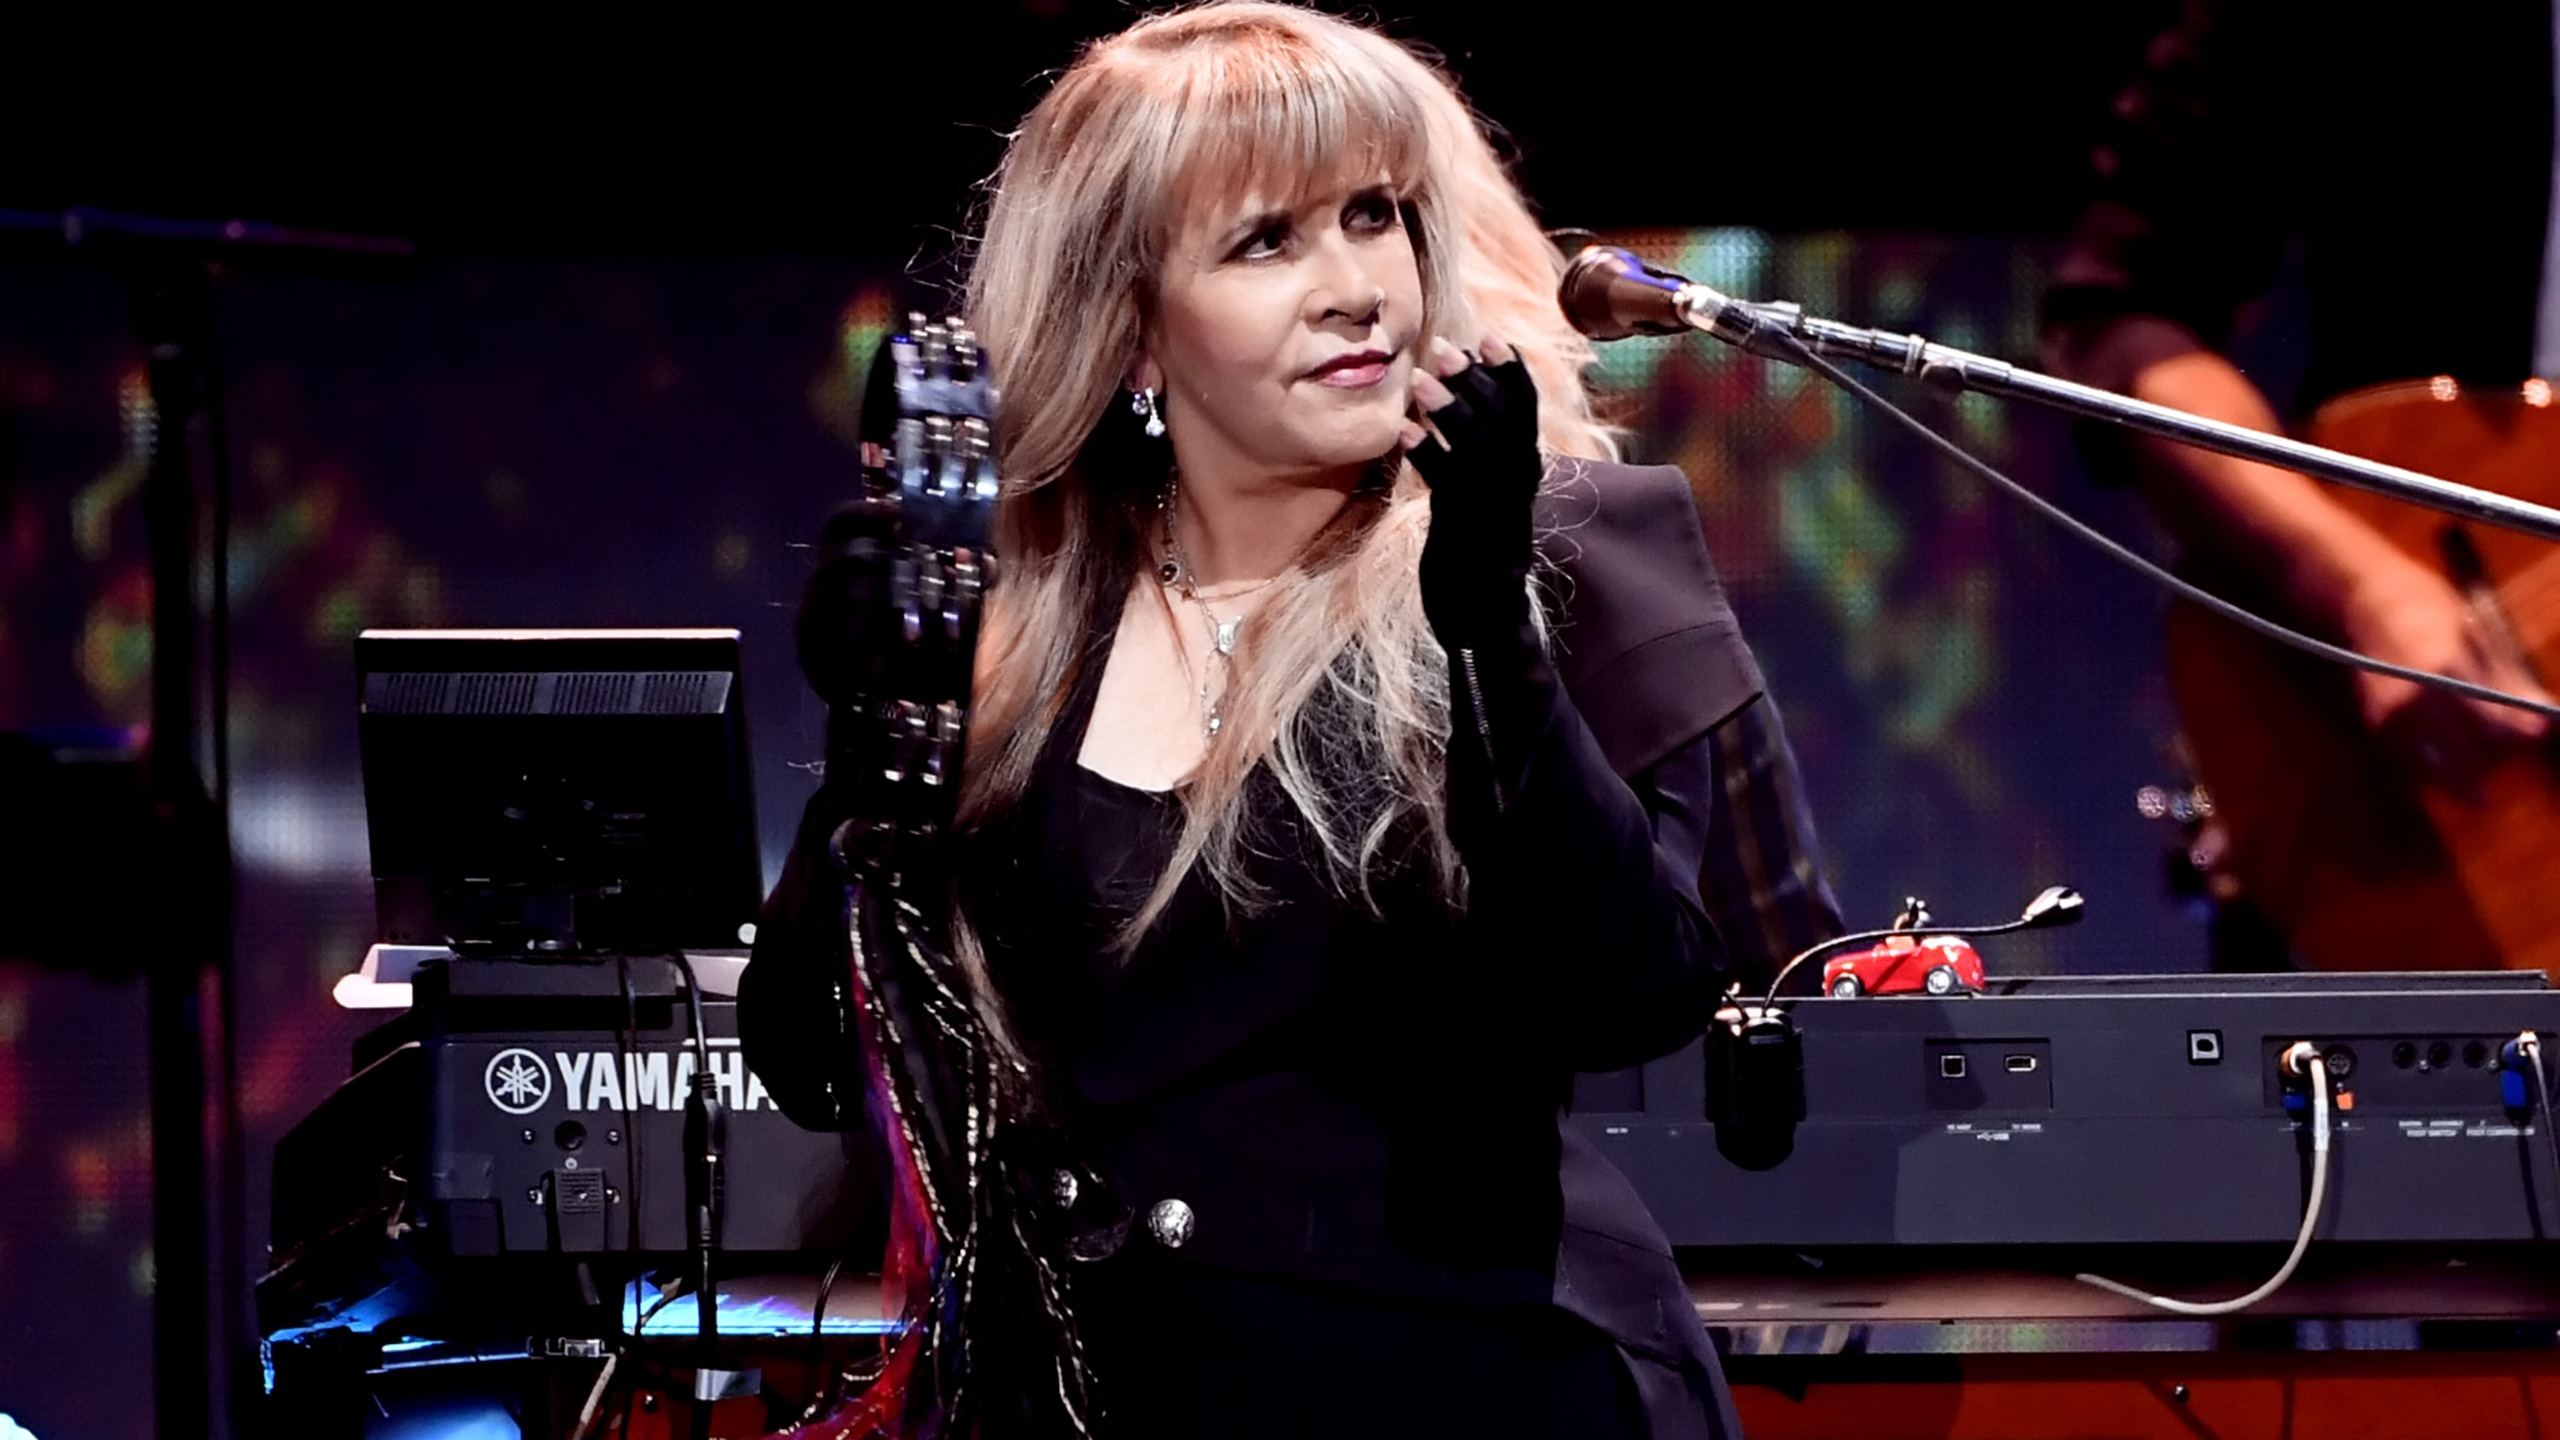 Stevie Nicks of Fleetwood Mac performs onstage during the 2018 iHeartRadio Music Festival at T-Mobile Arena in Las Vegas on Sept. 21, 2018. (Credit: Kevin Winter / Getty Images for iHeartMedia)